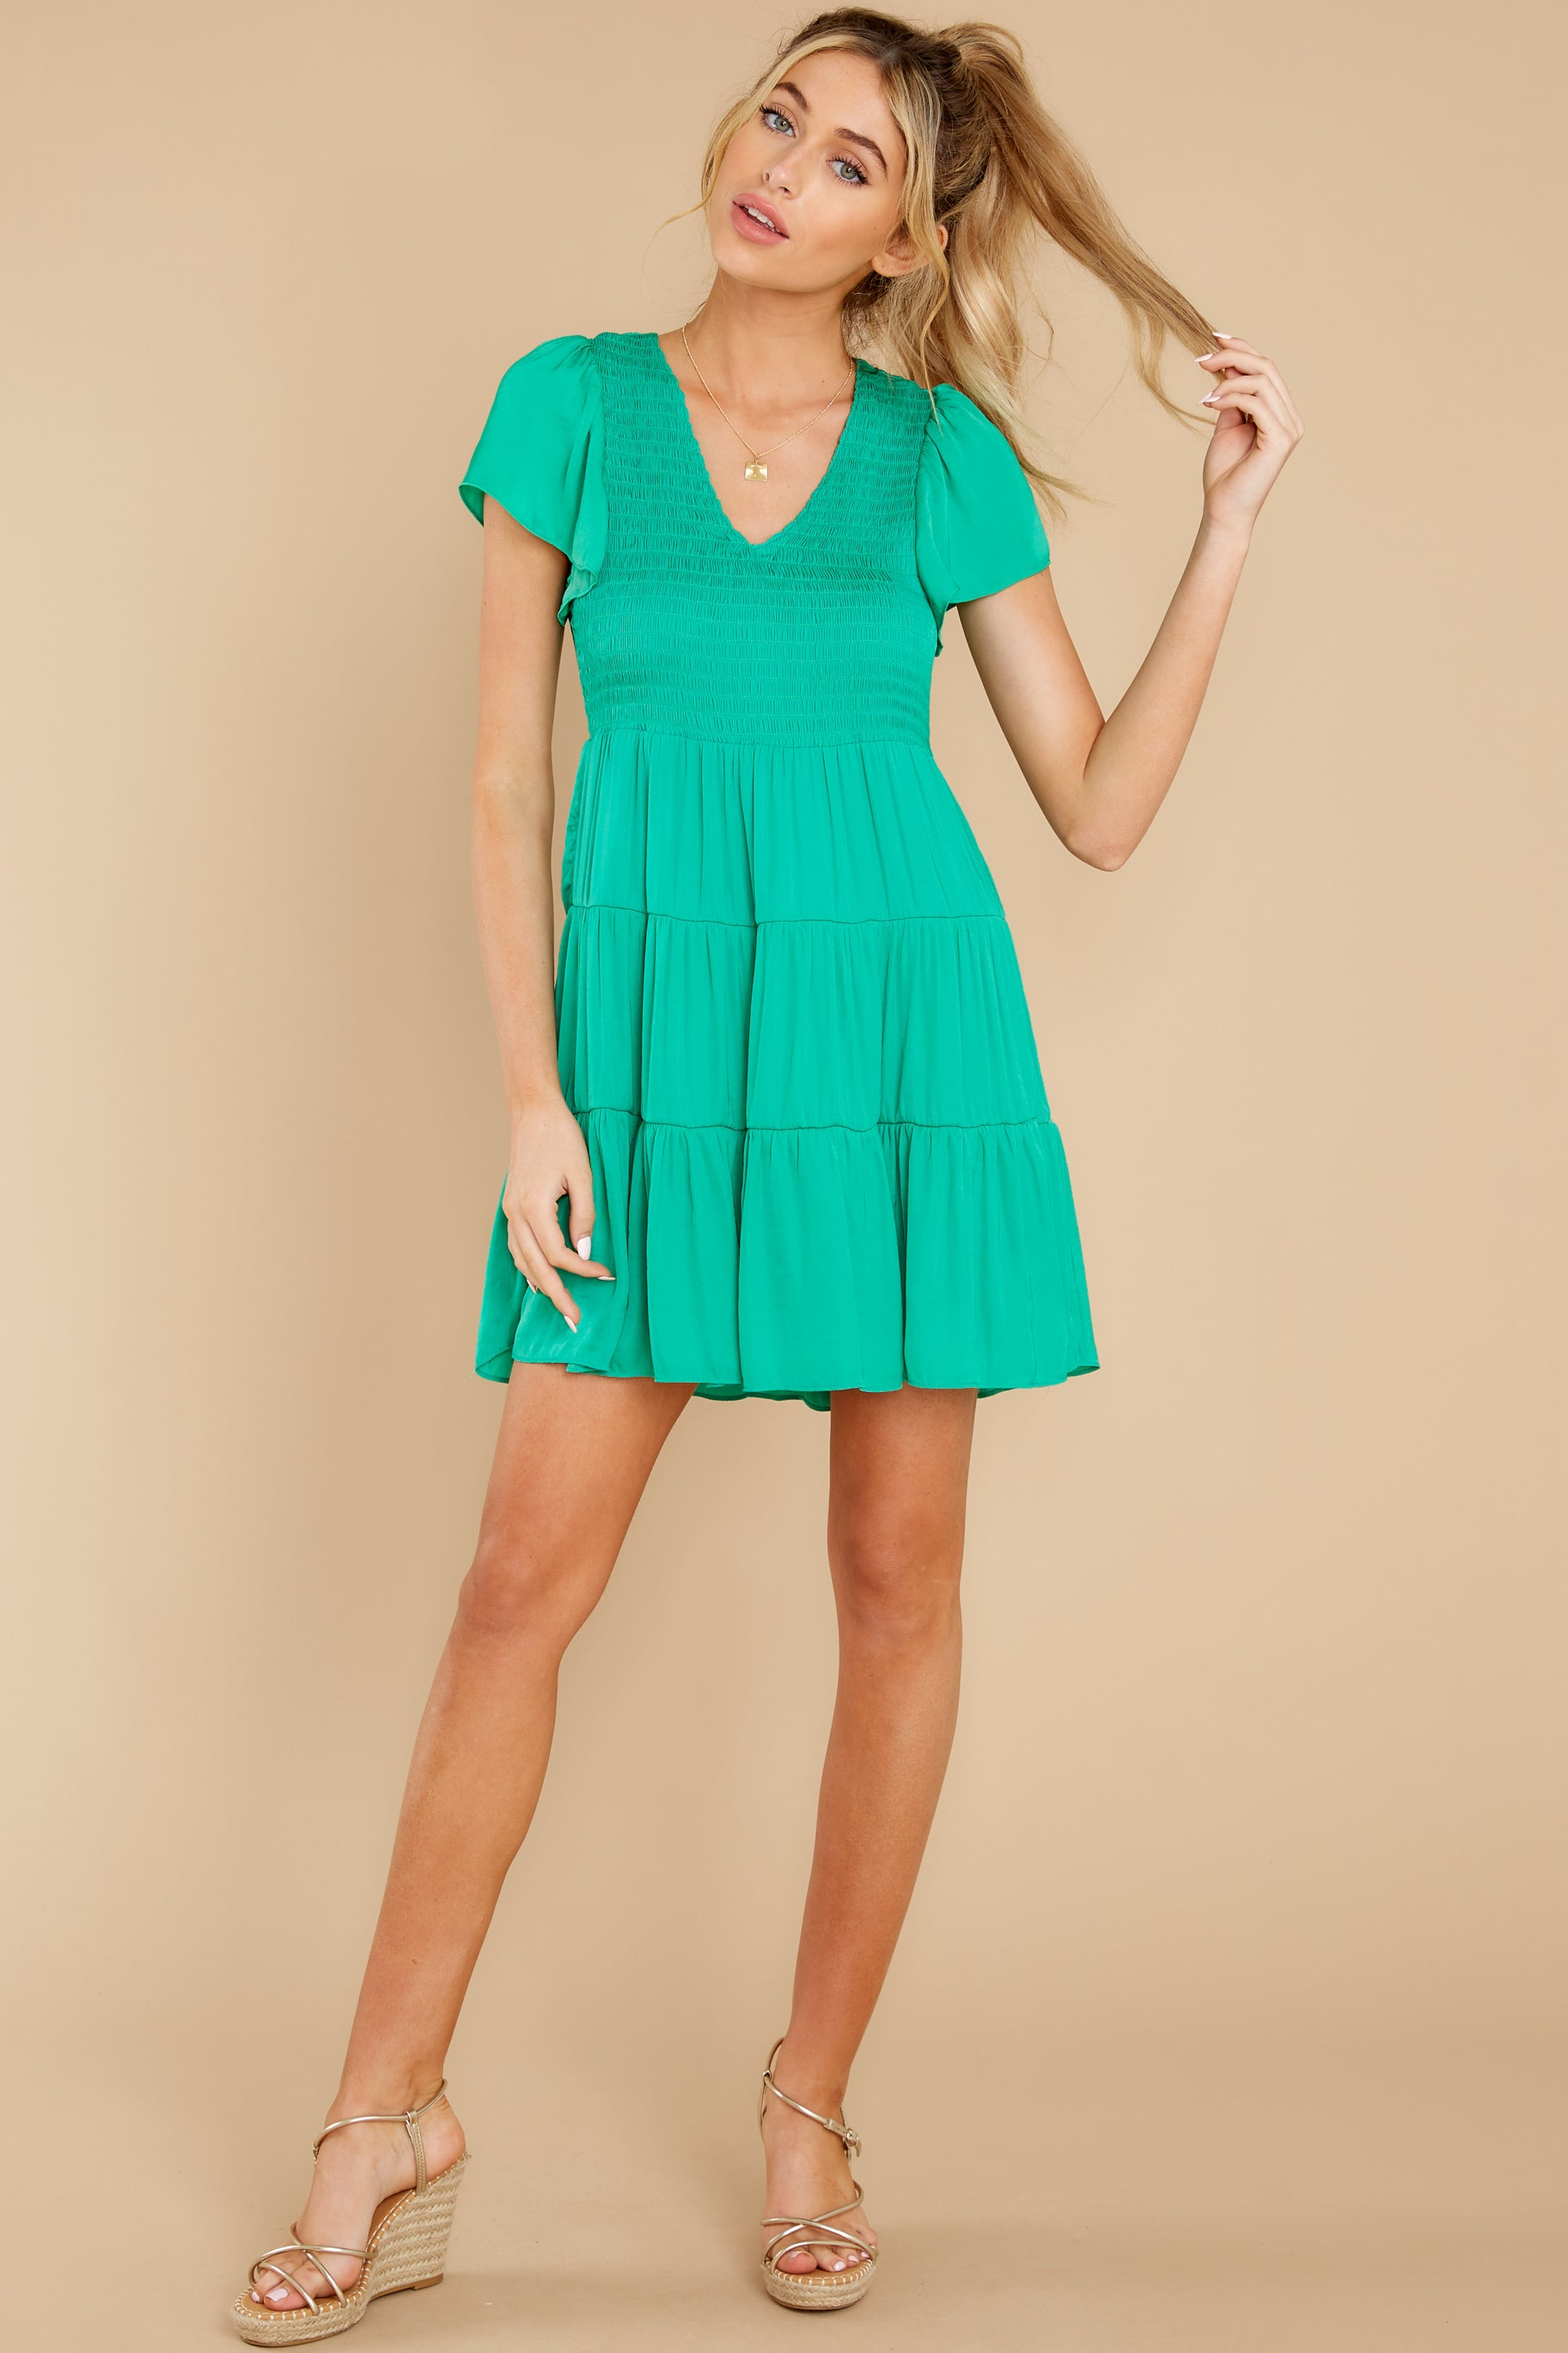 4 End Of The Night Jade Green Dress at reddress.com